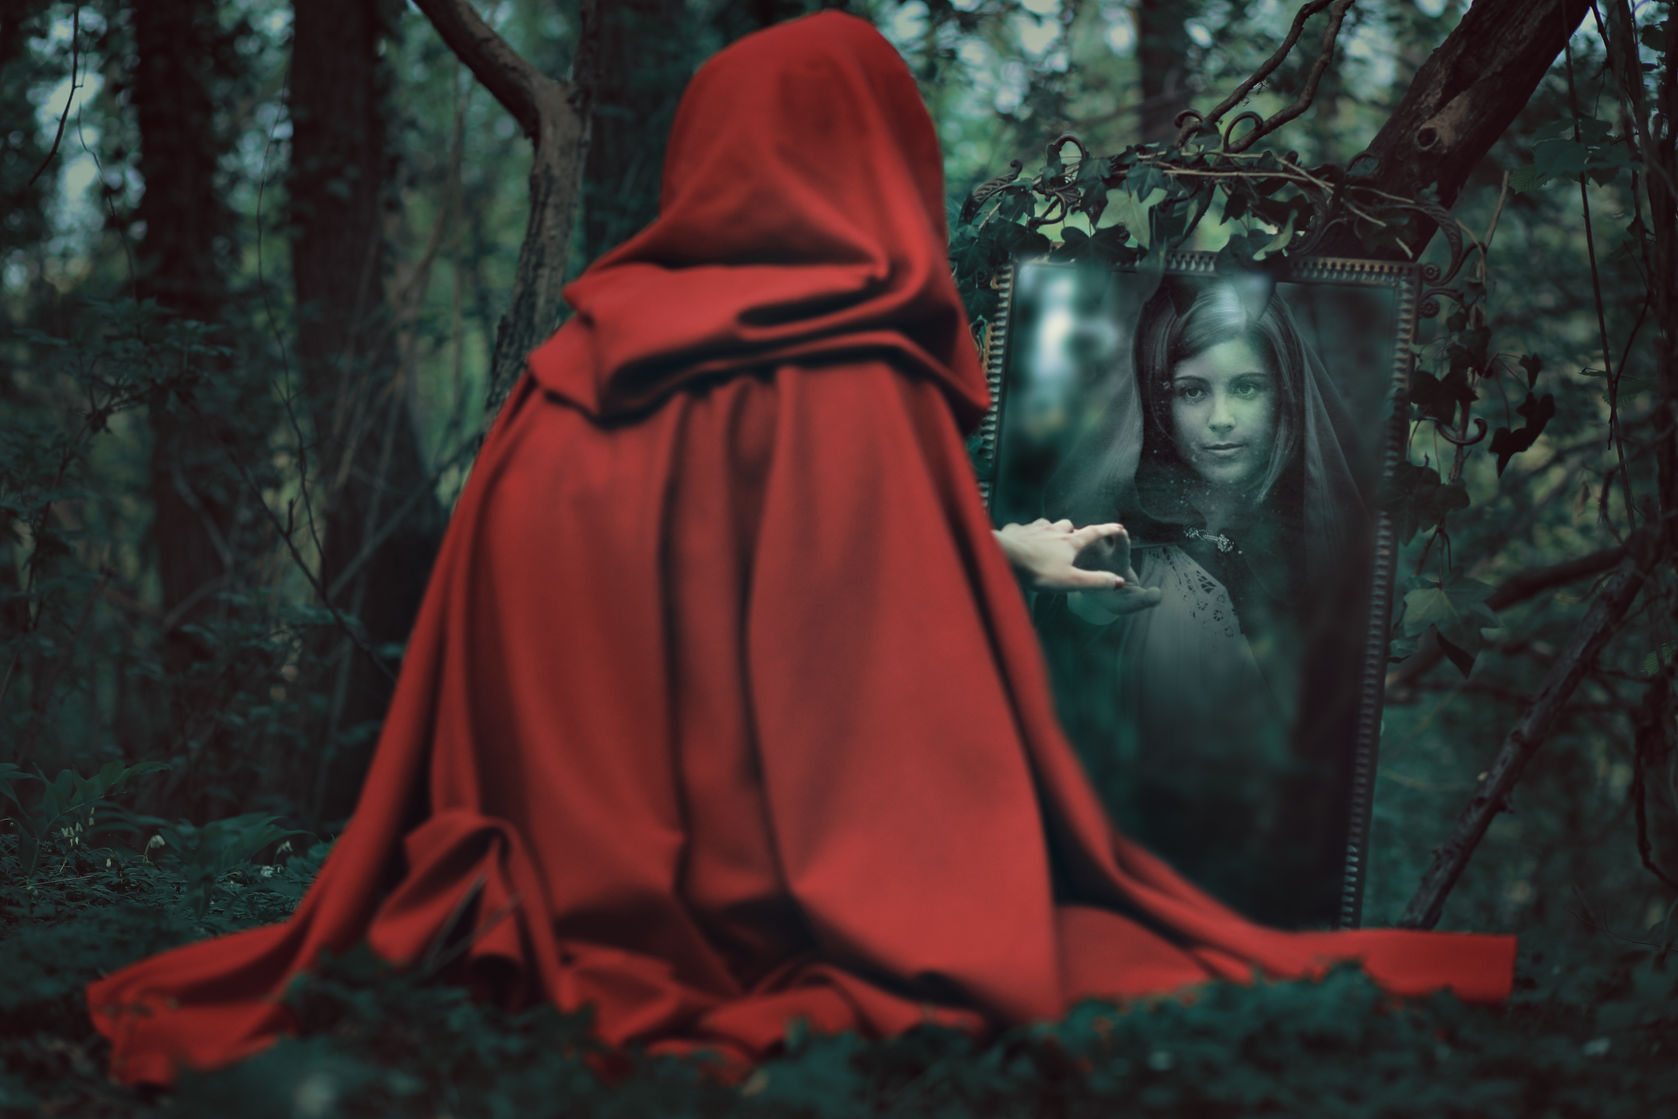 44701697 - mysterious red hooded woman in front of a magical mirror. dark fantasy